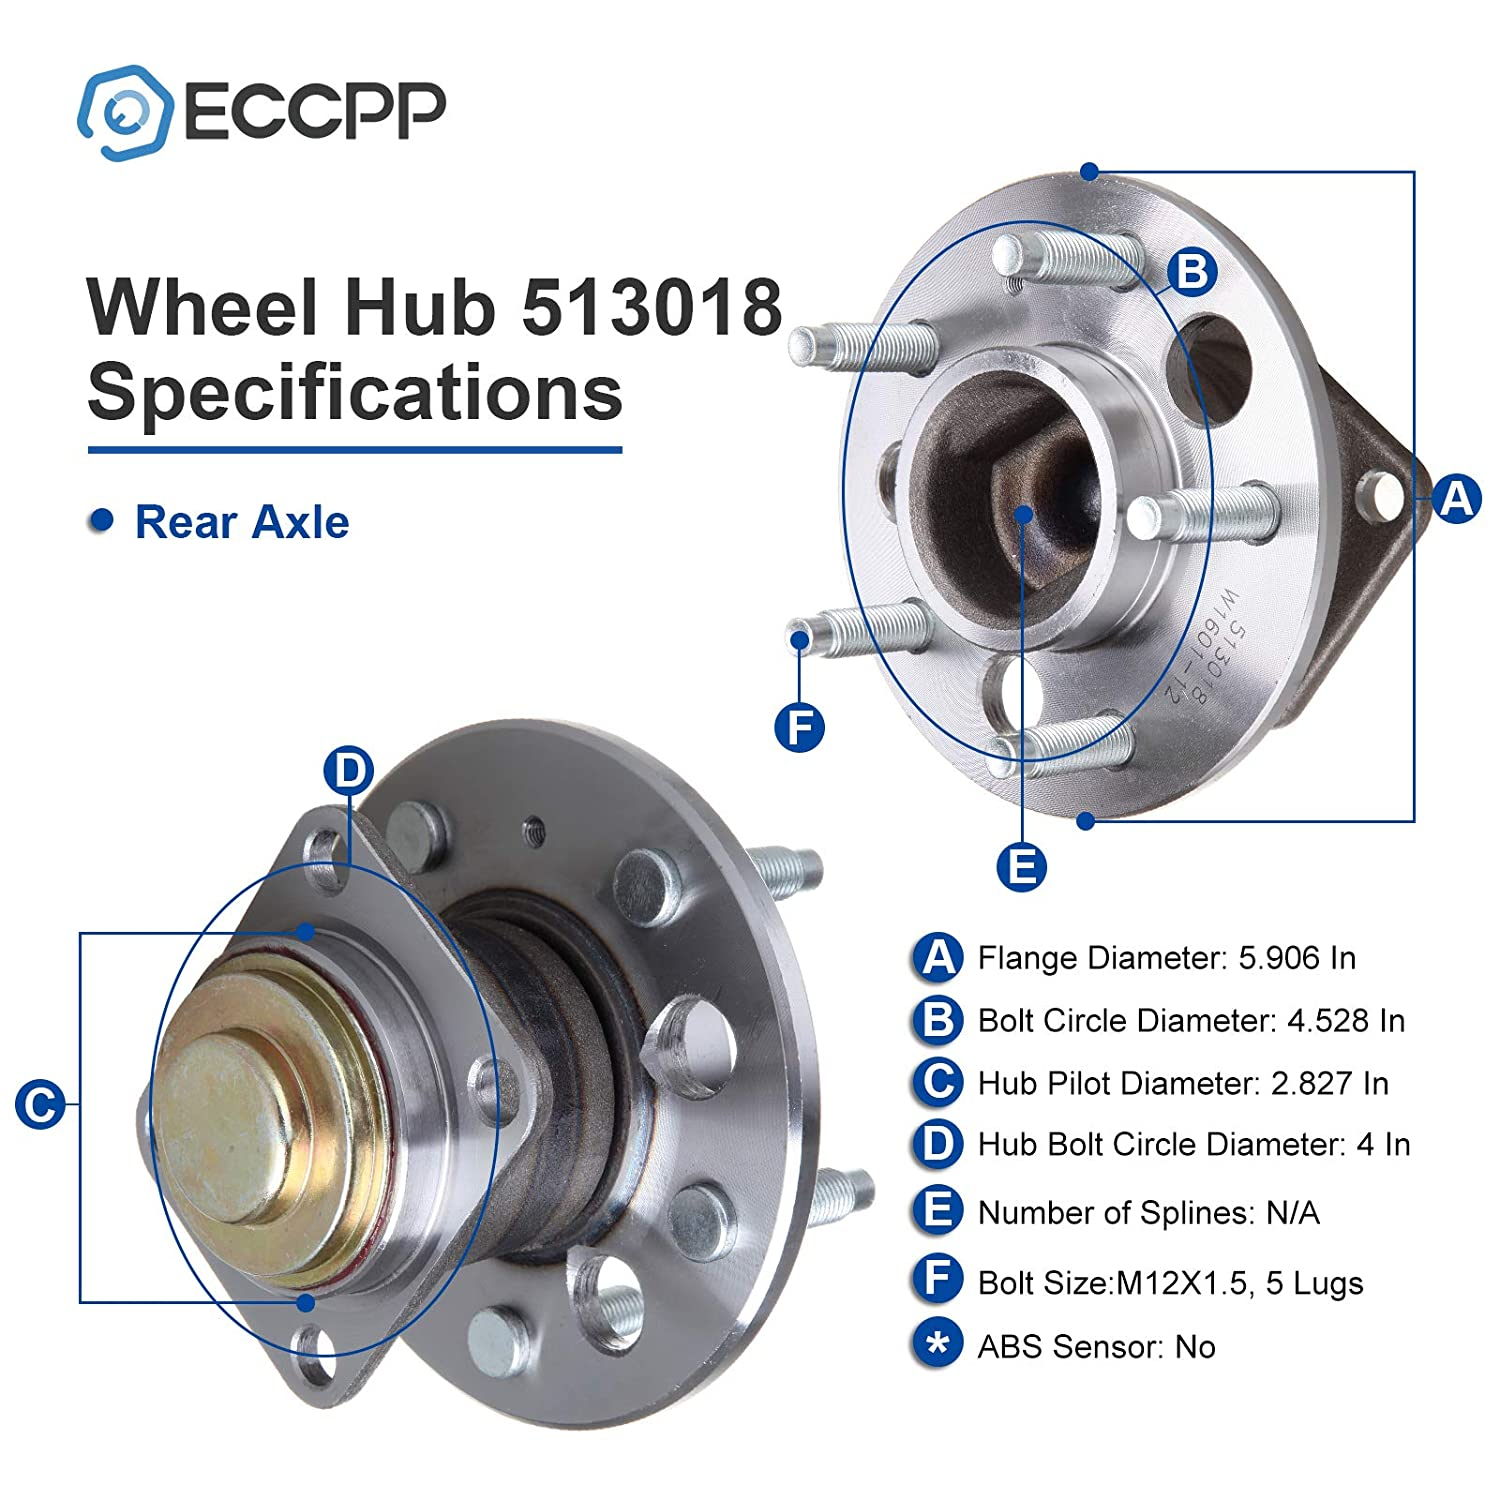 ECCPP Replacement for Wheel Bearing Hub 513018 Hub Bearing Assembly Hub Assemblies Rear Axle 5 Lugs for Buick Cadillac Chevrolet